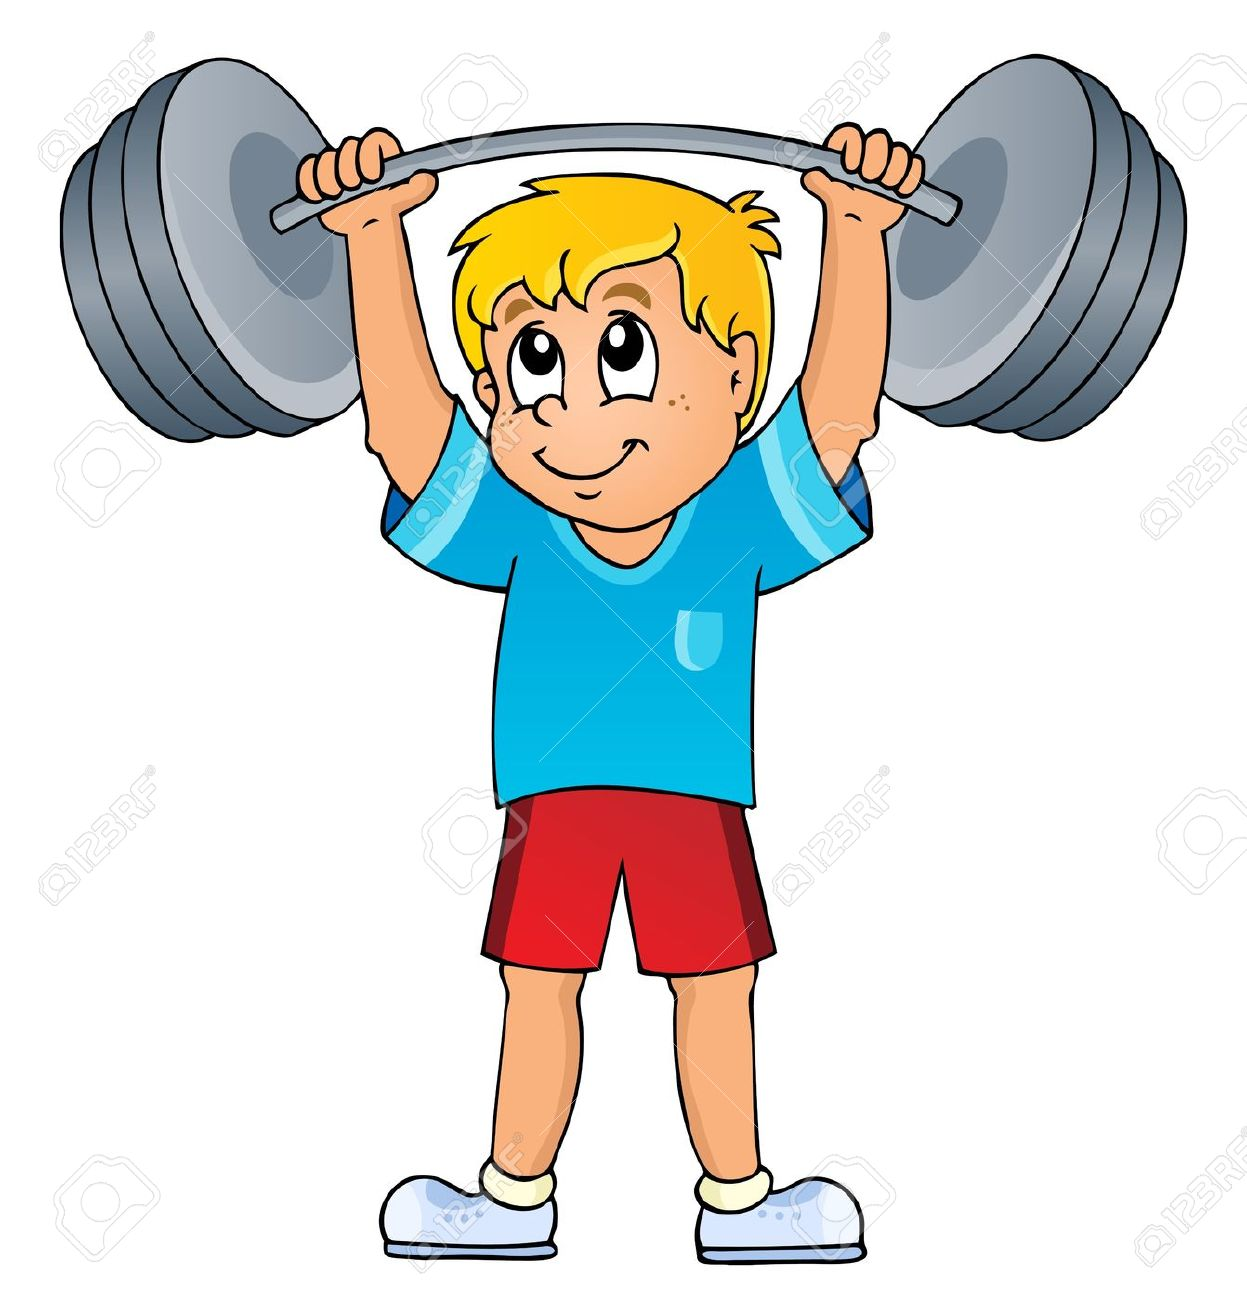 weight lifting: Sport and gym .-weight lifting: Sport and gym .-11